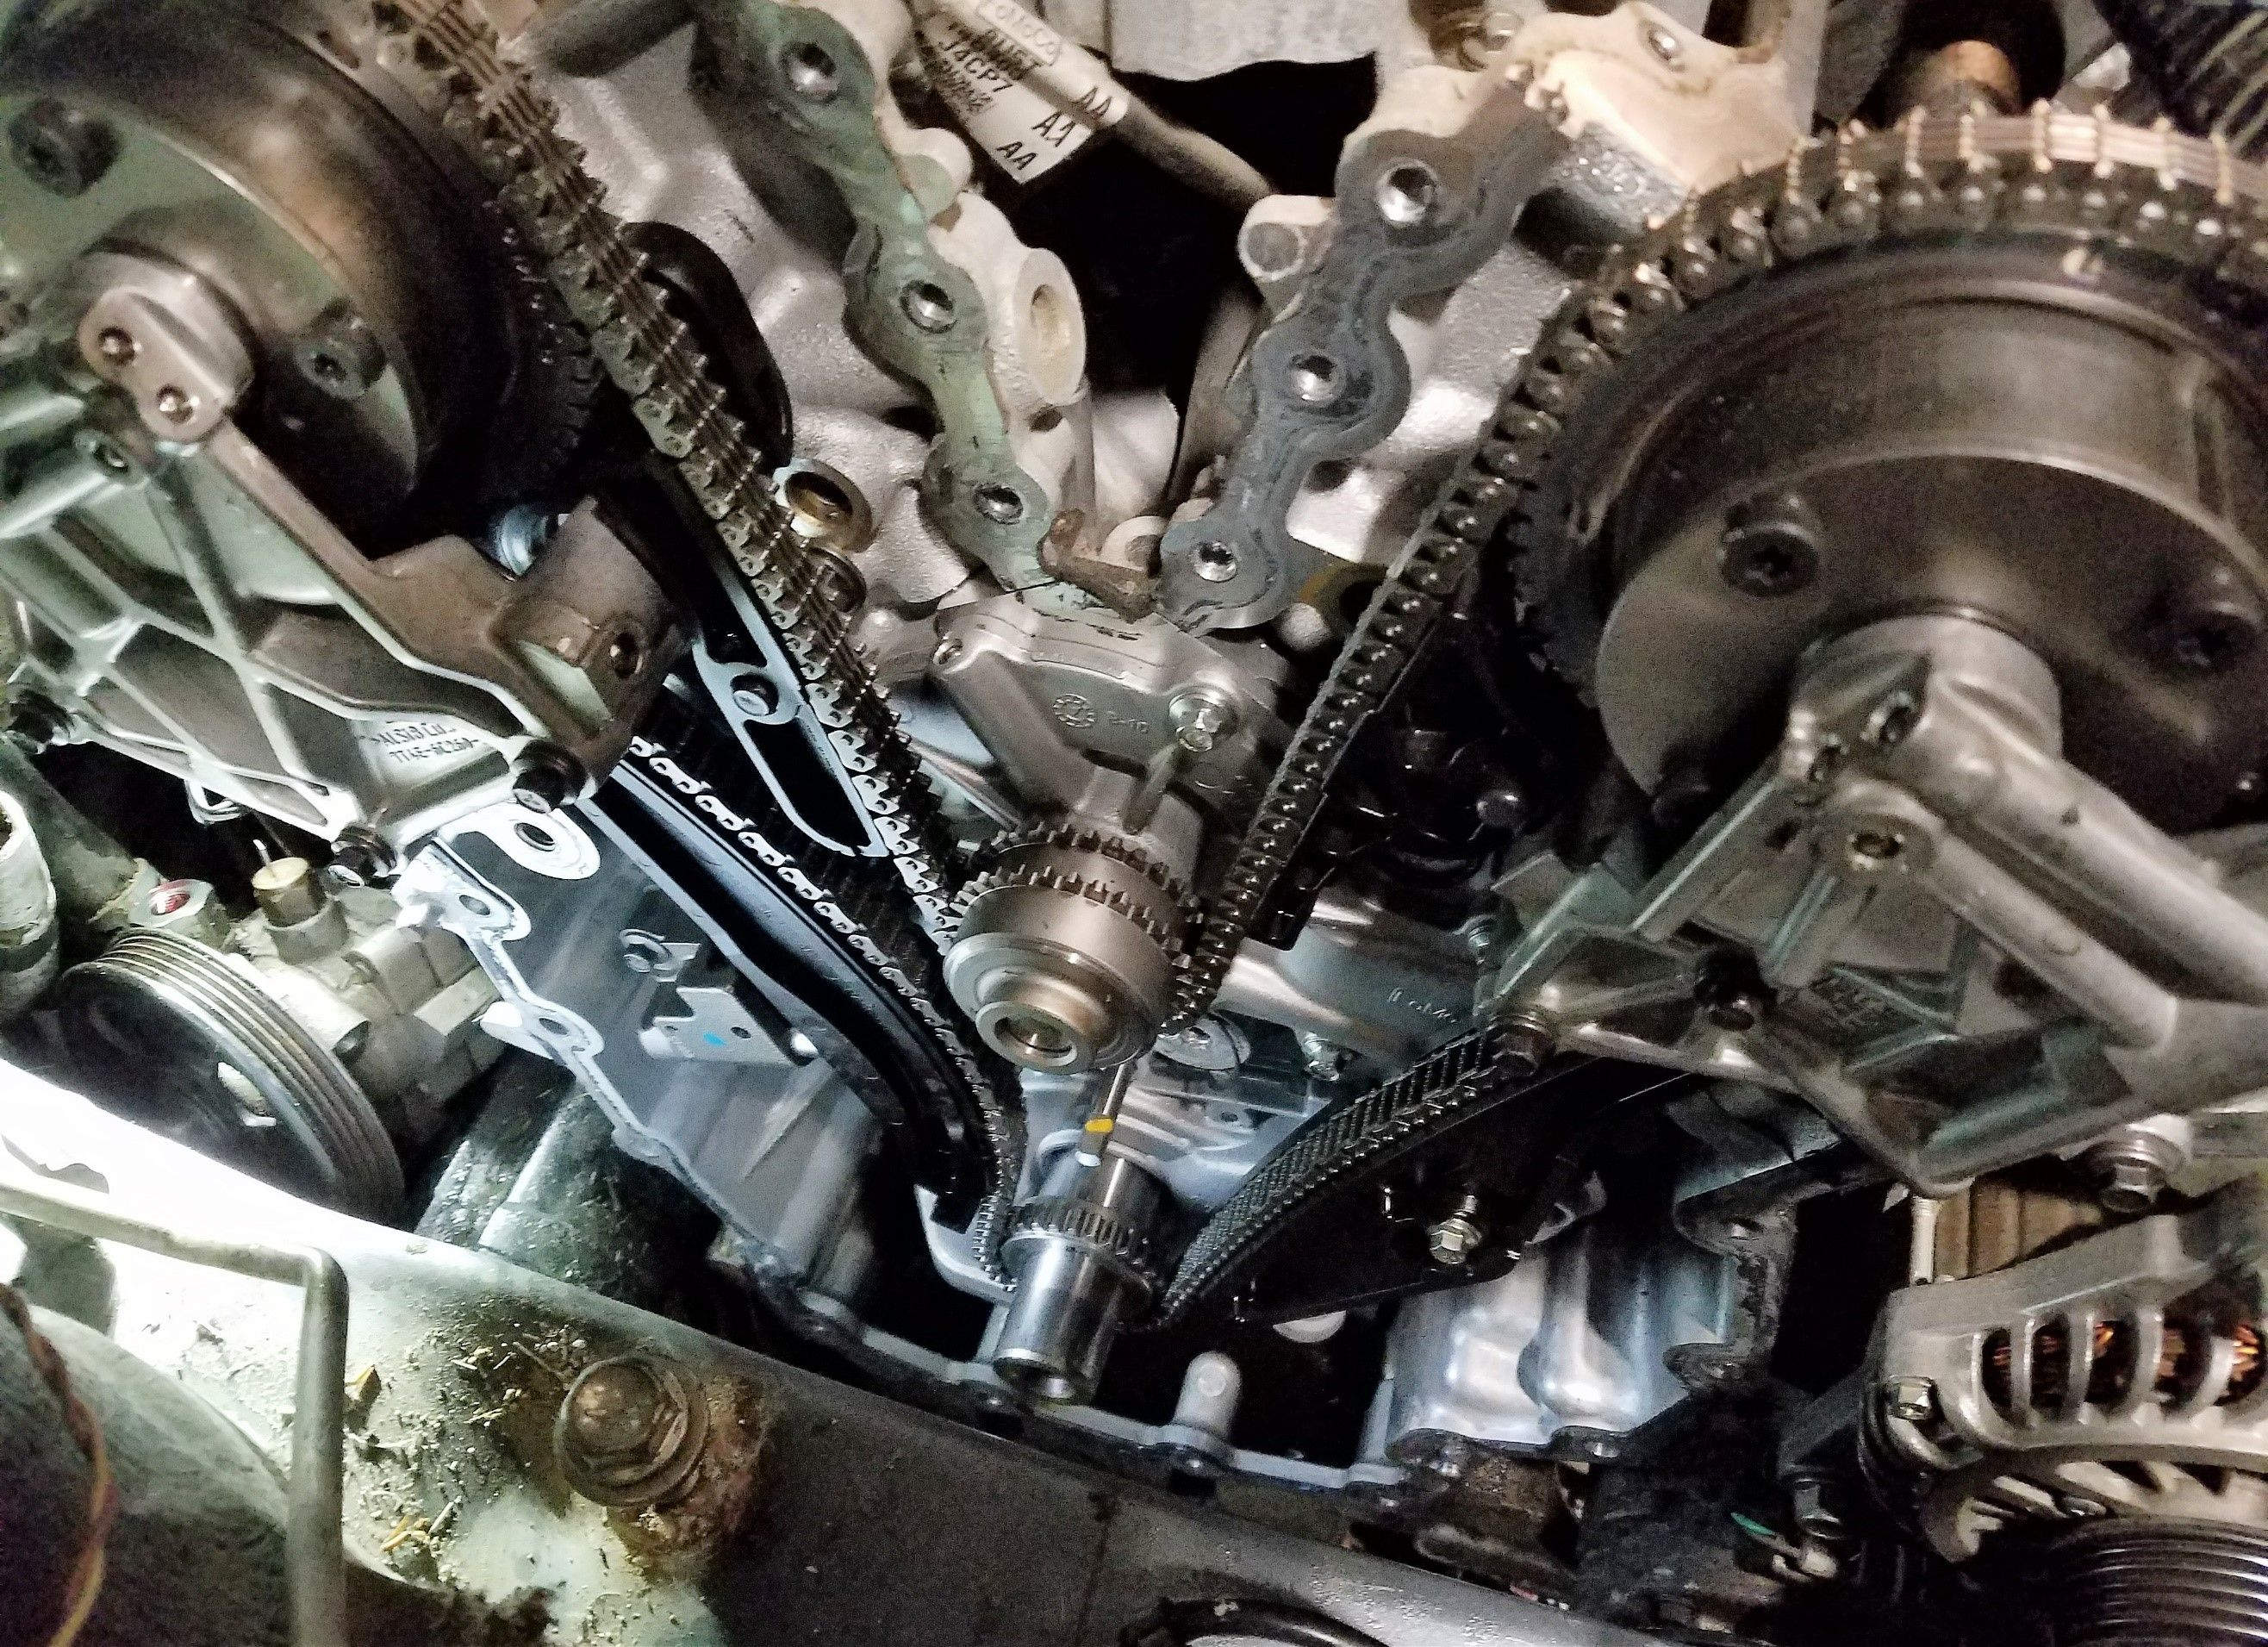 Cx 9 Timing Chain Water Pump And Vvt Engine Does Not Need To Be 40 Ford V6 Diagram Mazda Cx9 2